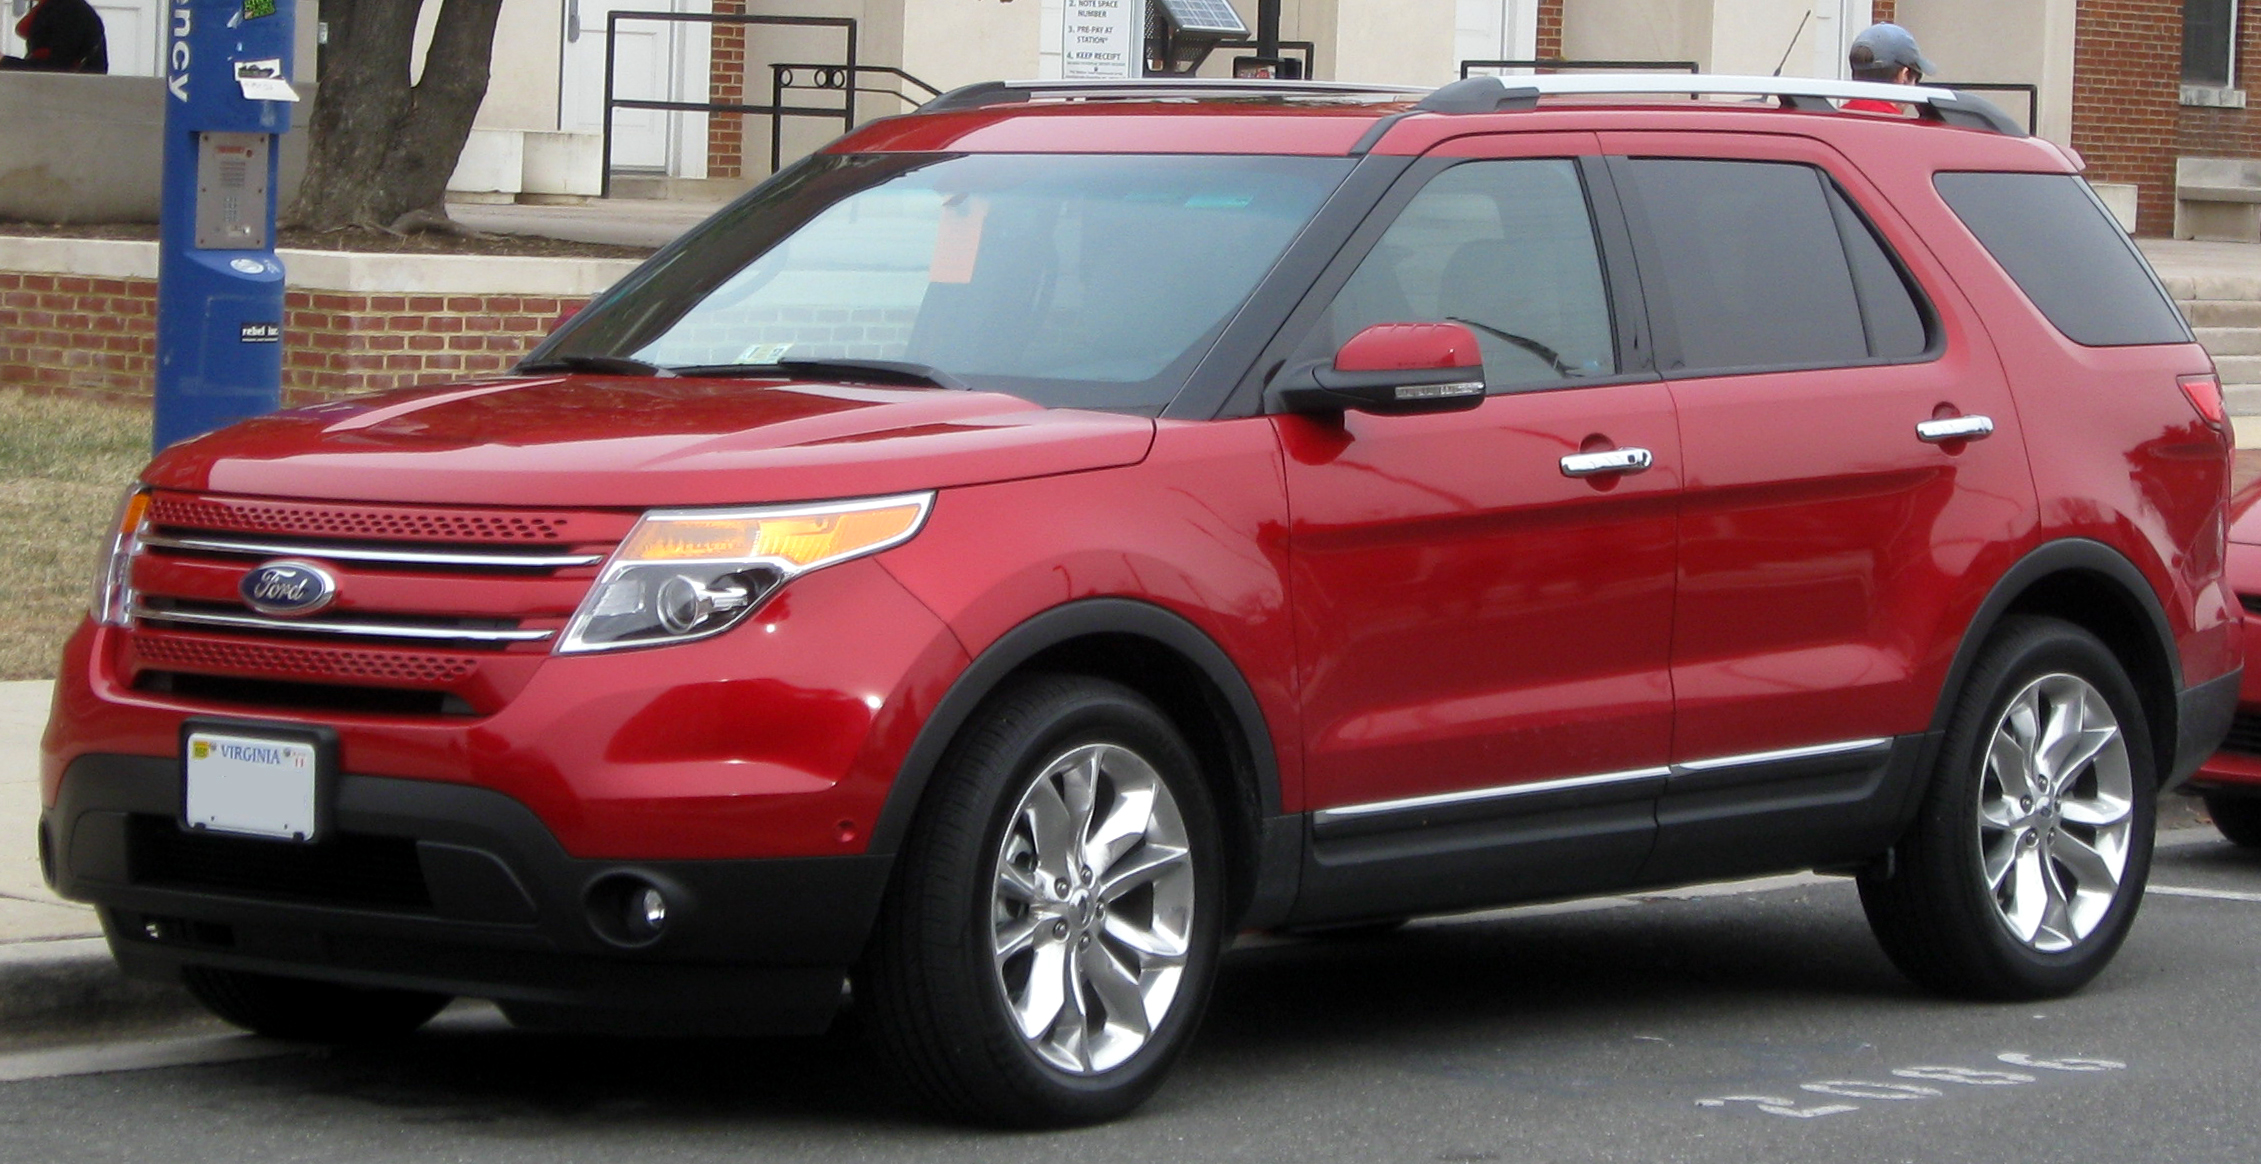 2011 Ford Explorer Limited >> Tiedosto 2011 Ford Explorer Limited 02 07 2011 Jpg